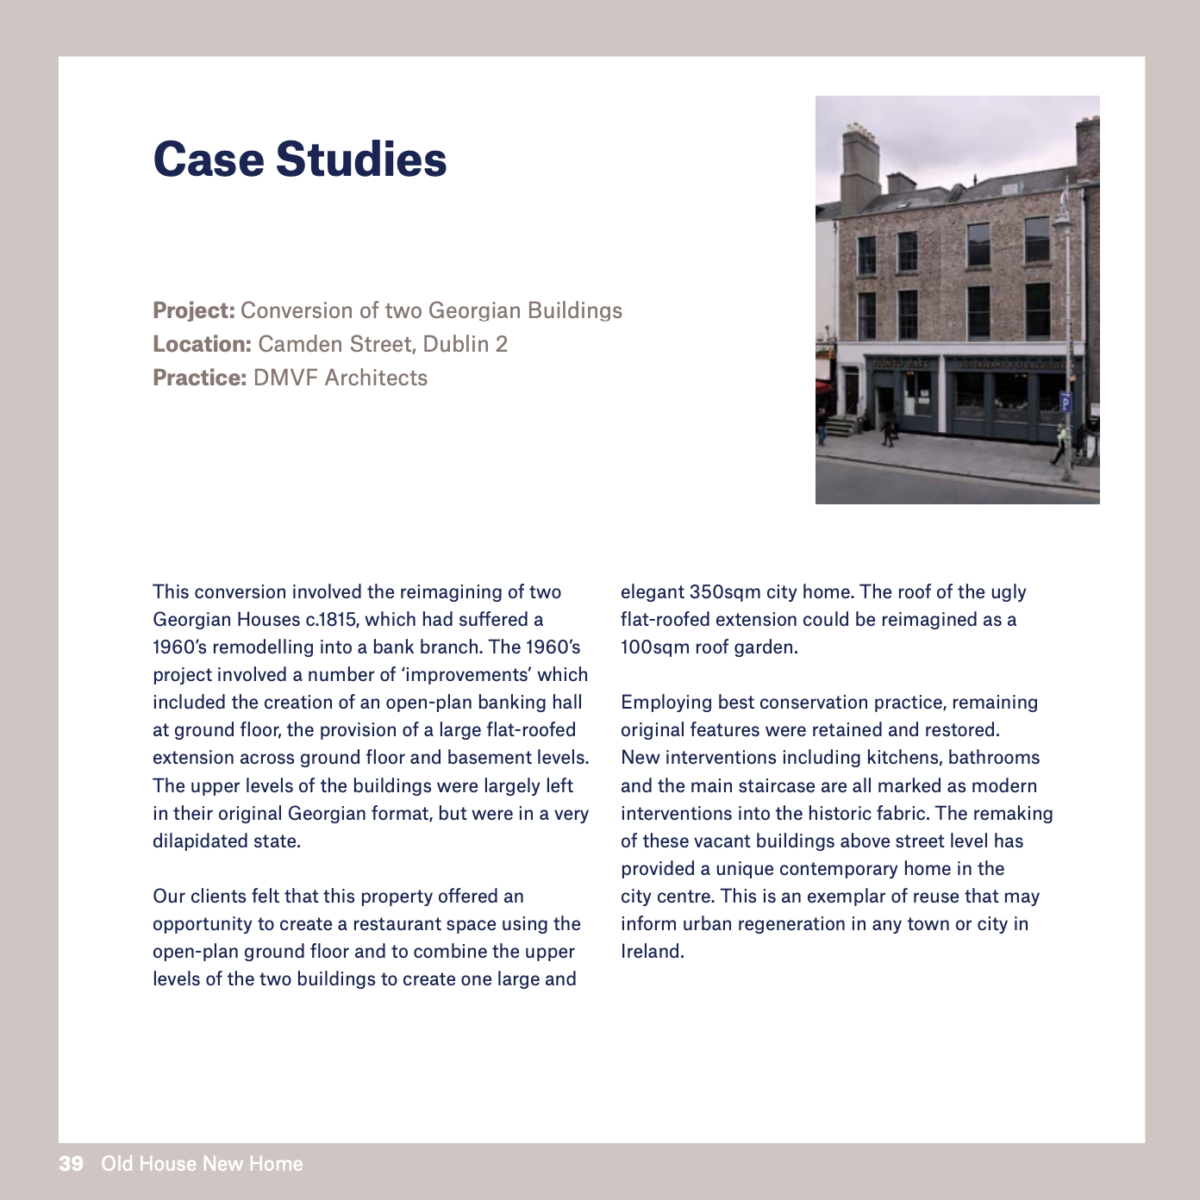 RIAI Old House New Home Publication